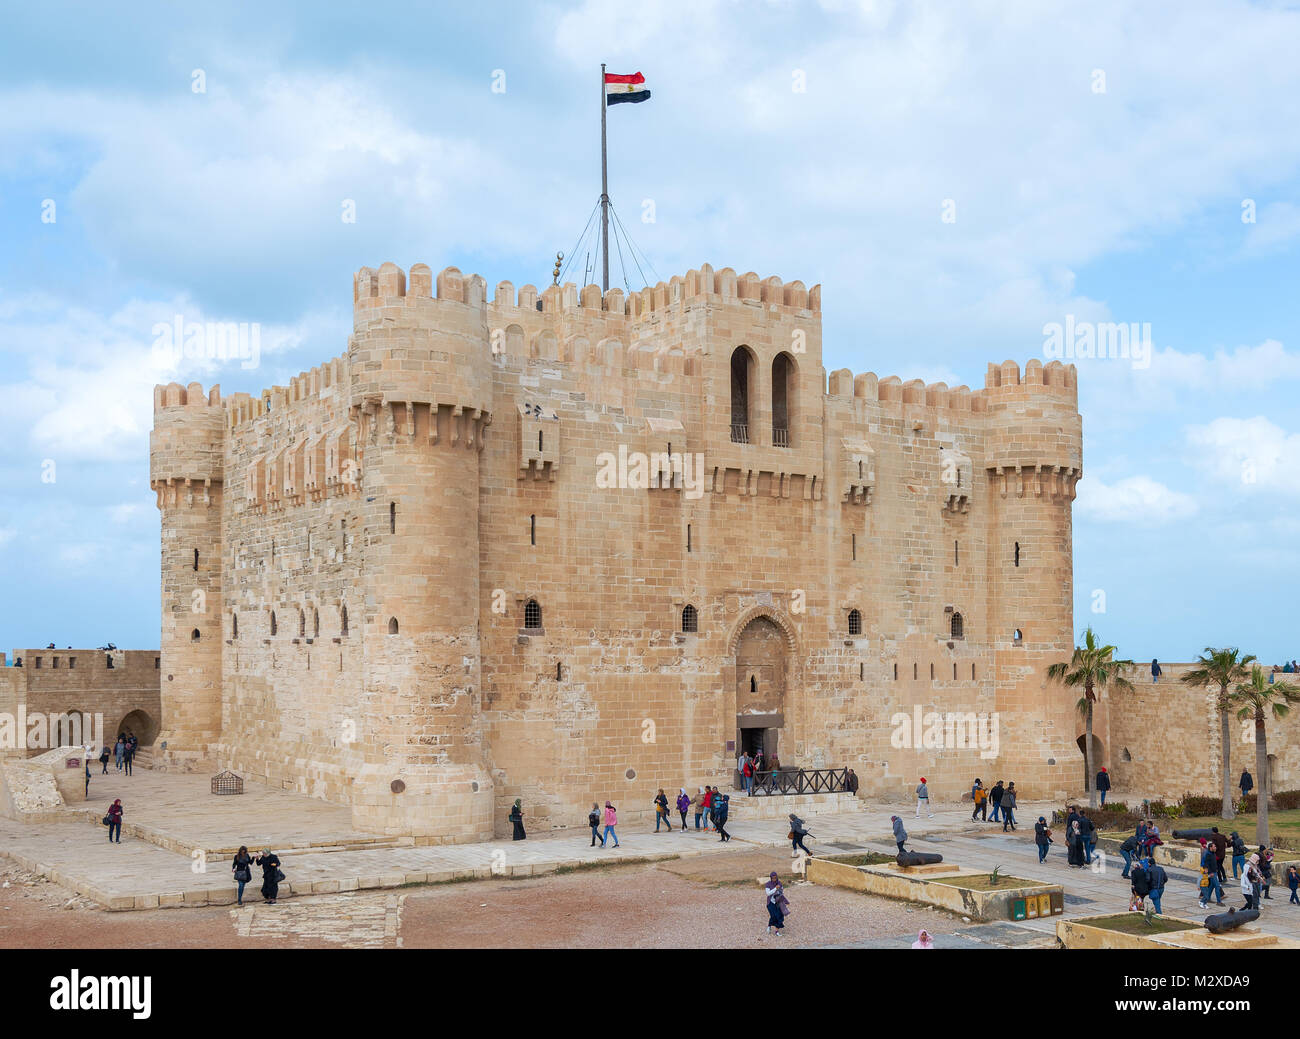 Alexandria, Egypt - January 25, 2018: Citadel of Qaitbay, a 15th century defensive fortress located on the Mediterranean - Stock Image